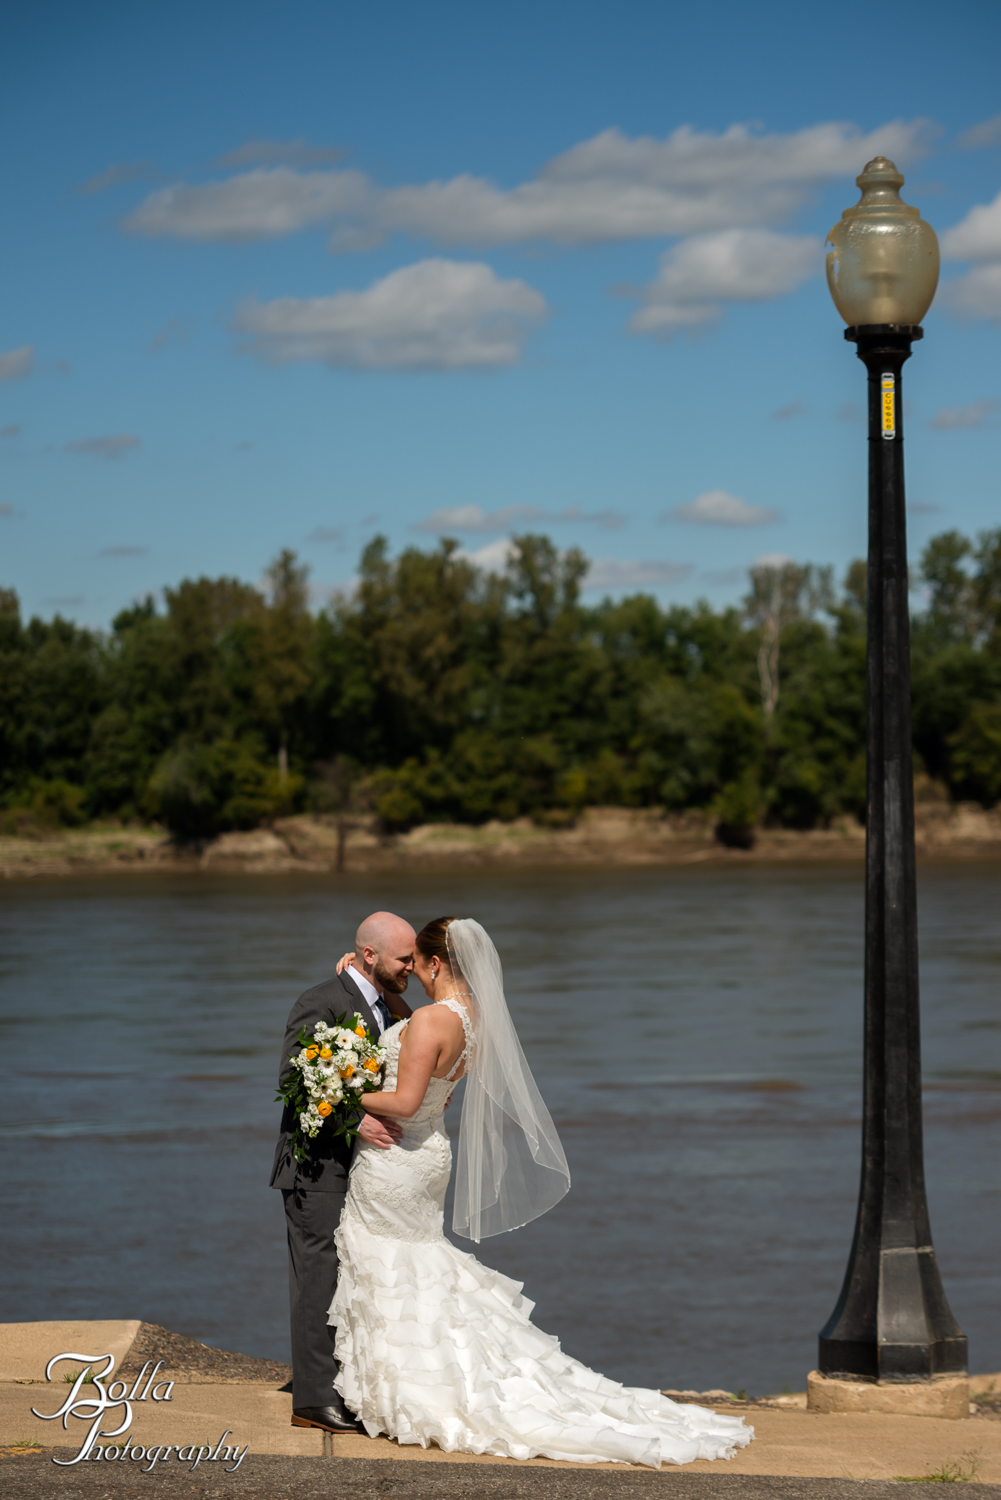 Bolla_Photography_St_Louis_wedding_photographer-0004.jpg